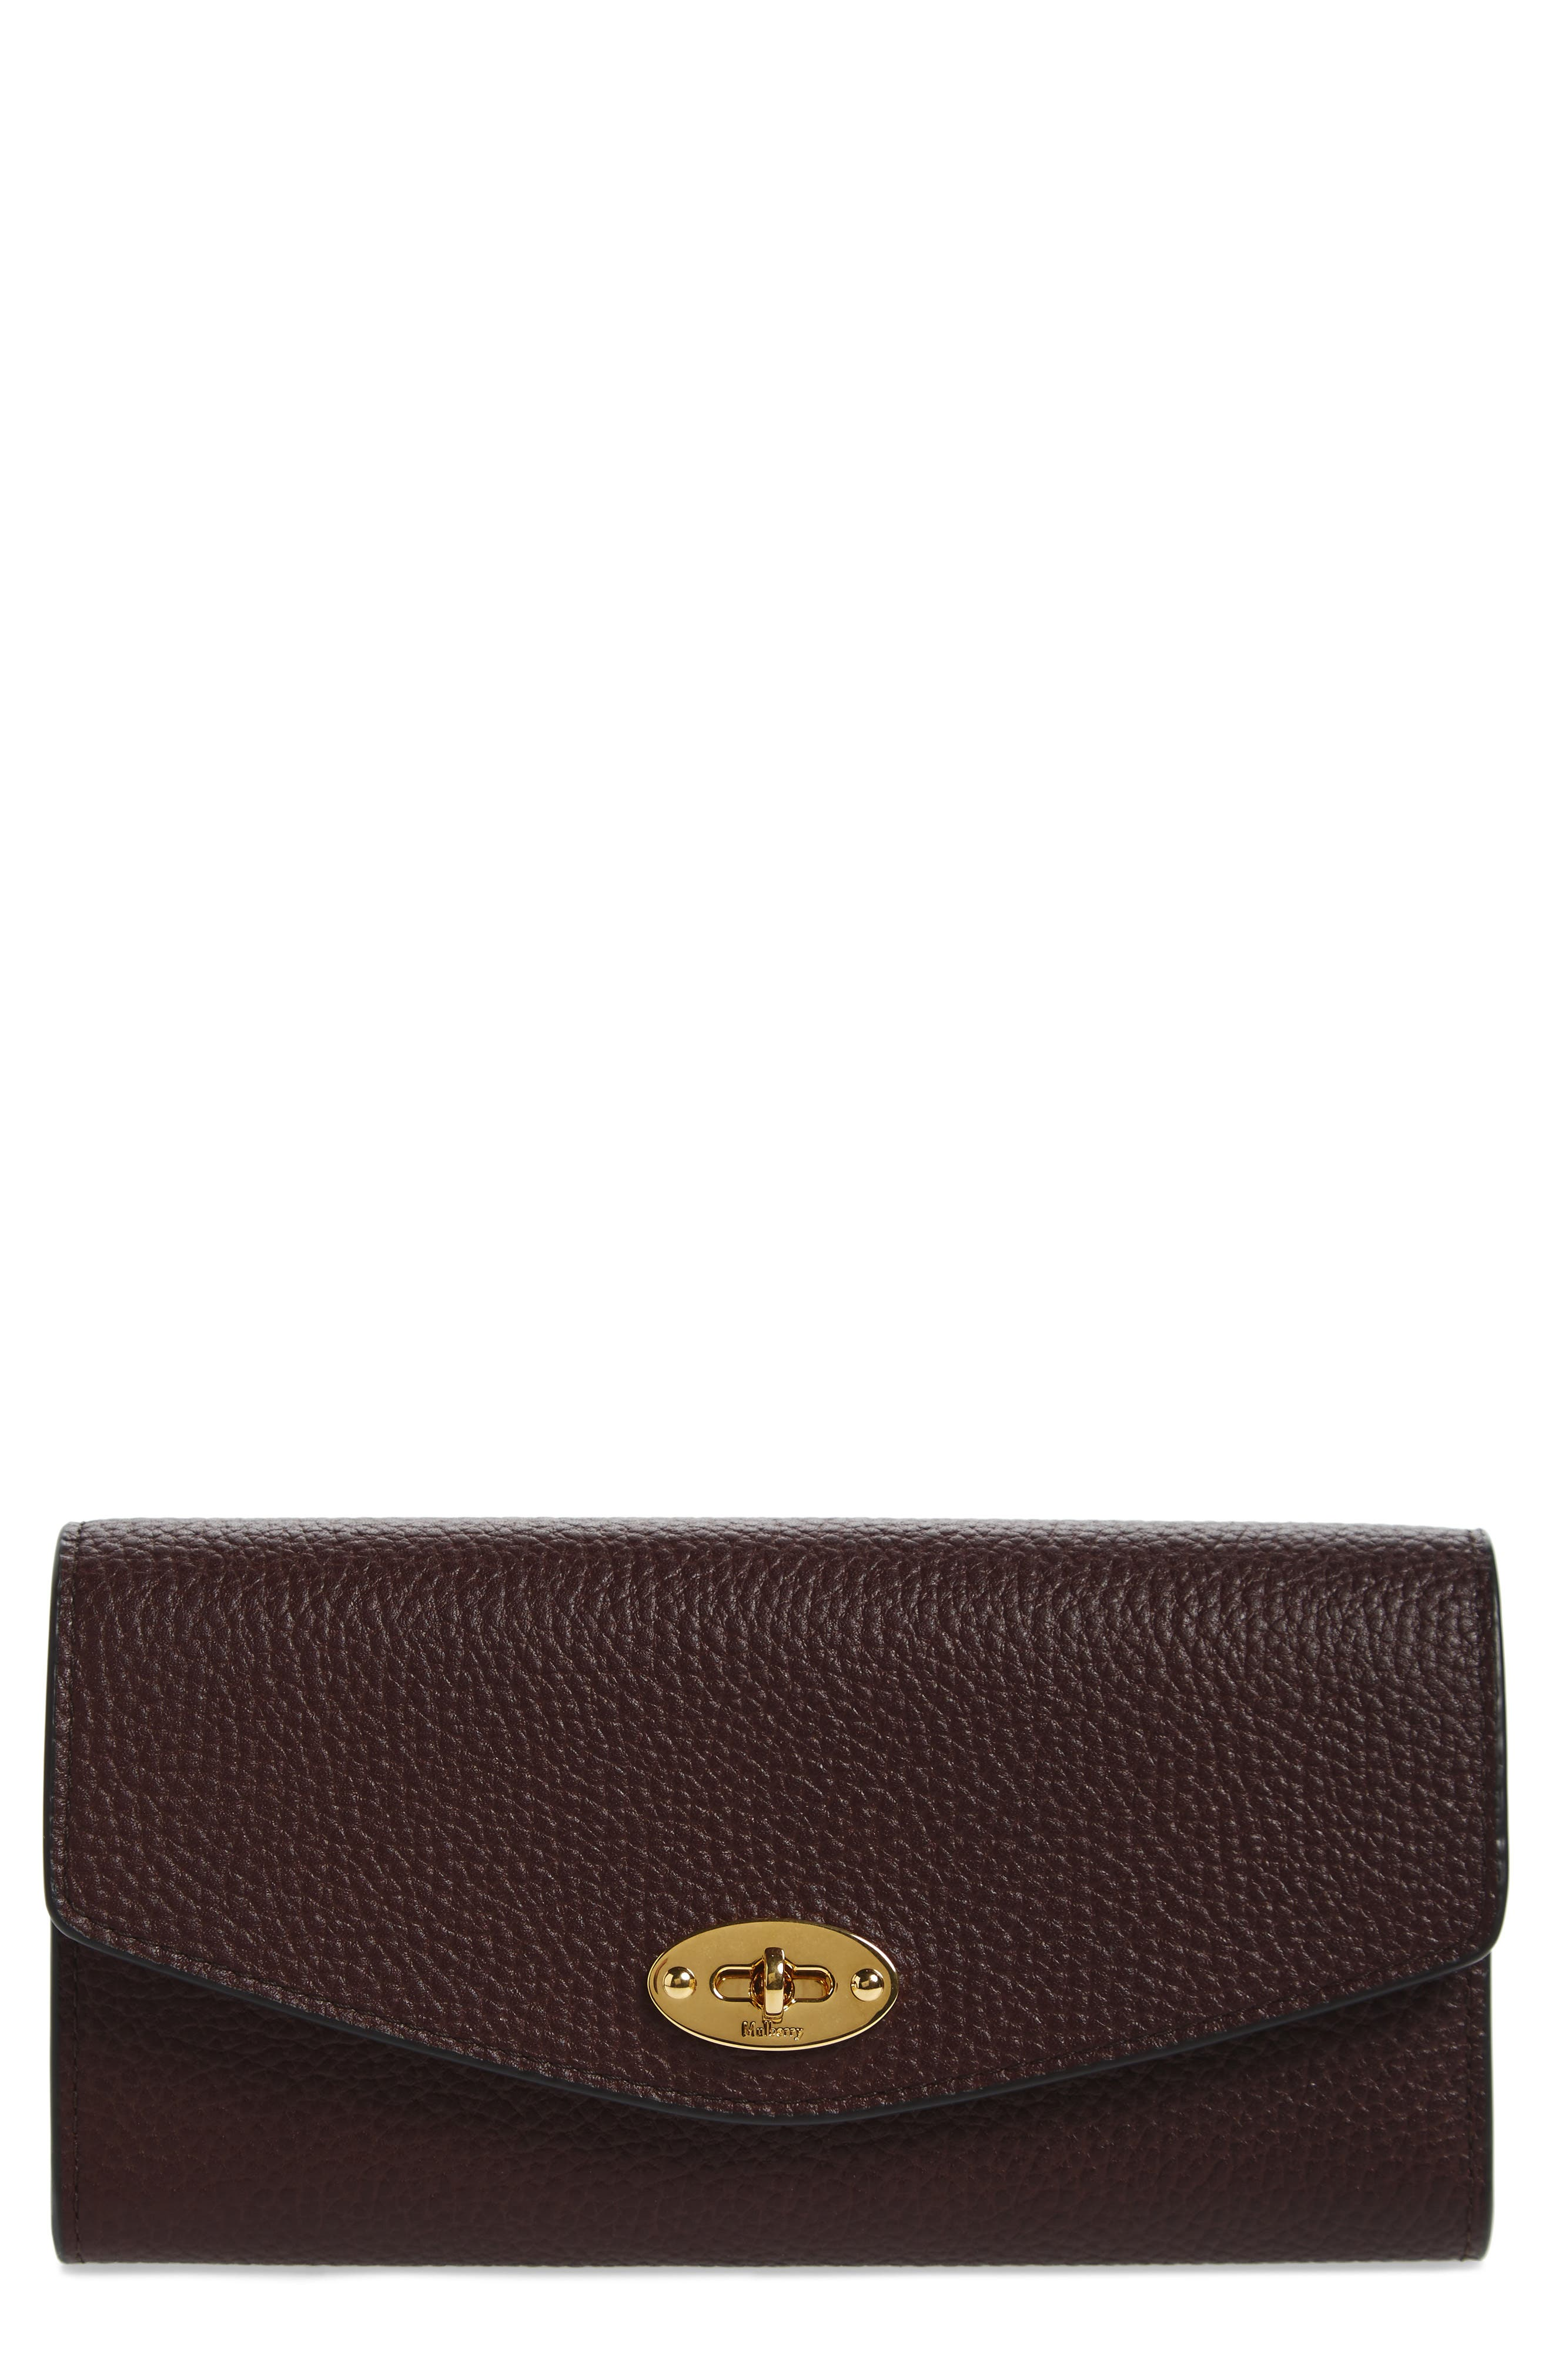 Darley Continental Calfskin Leather Wallet,                         Main,                         color, 601